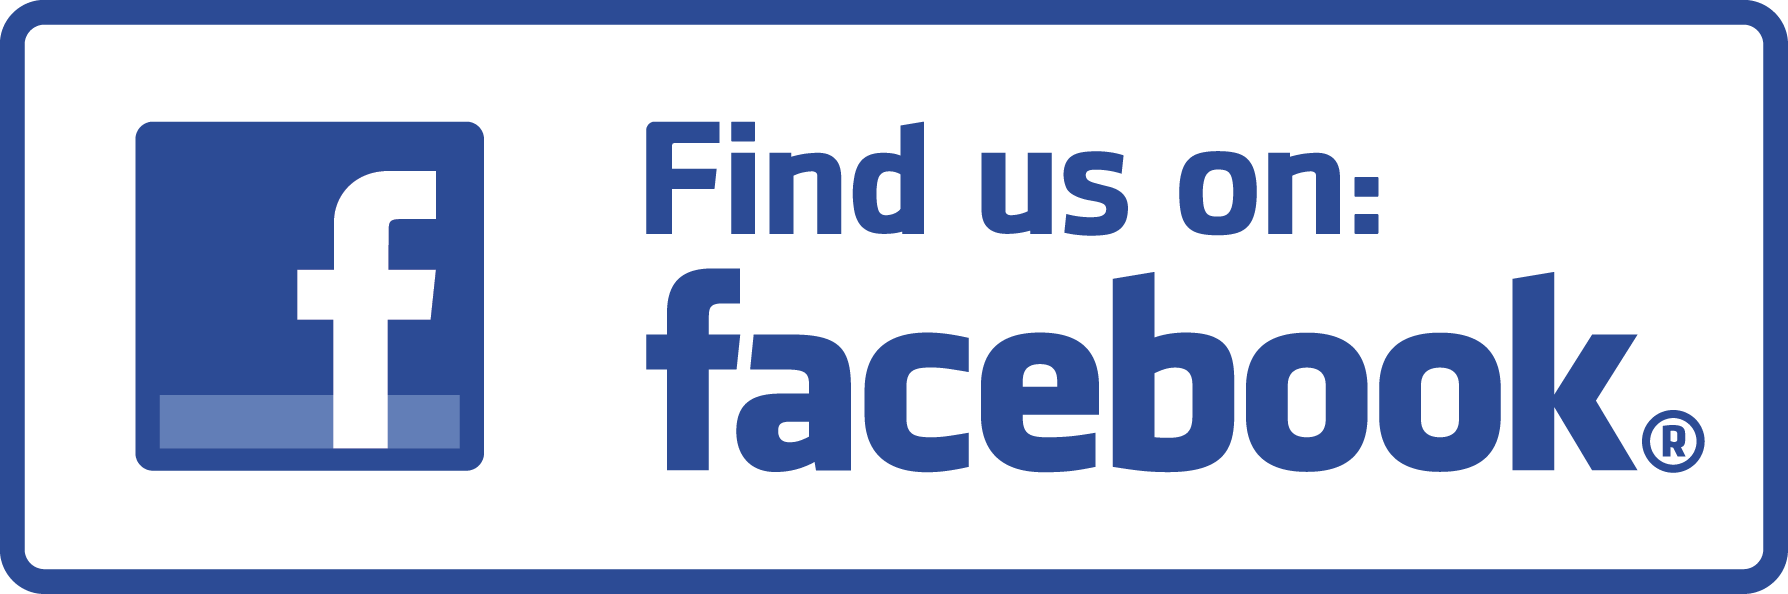 facebook-logo-wallpaper-full-hd.png